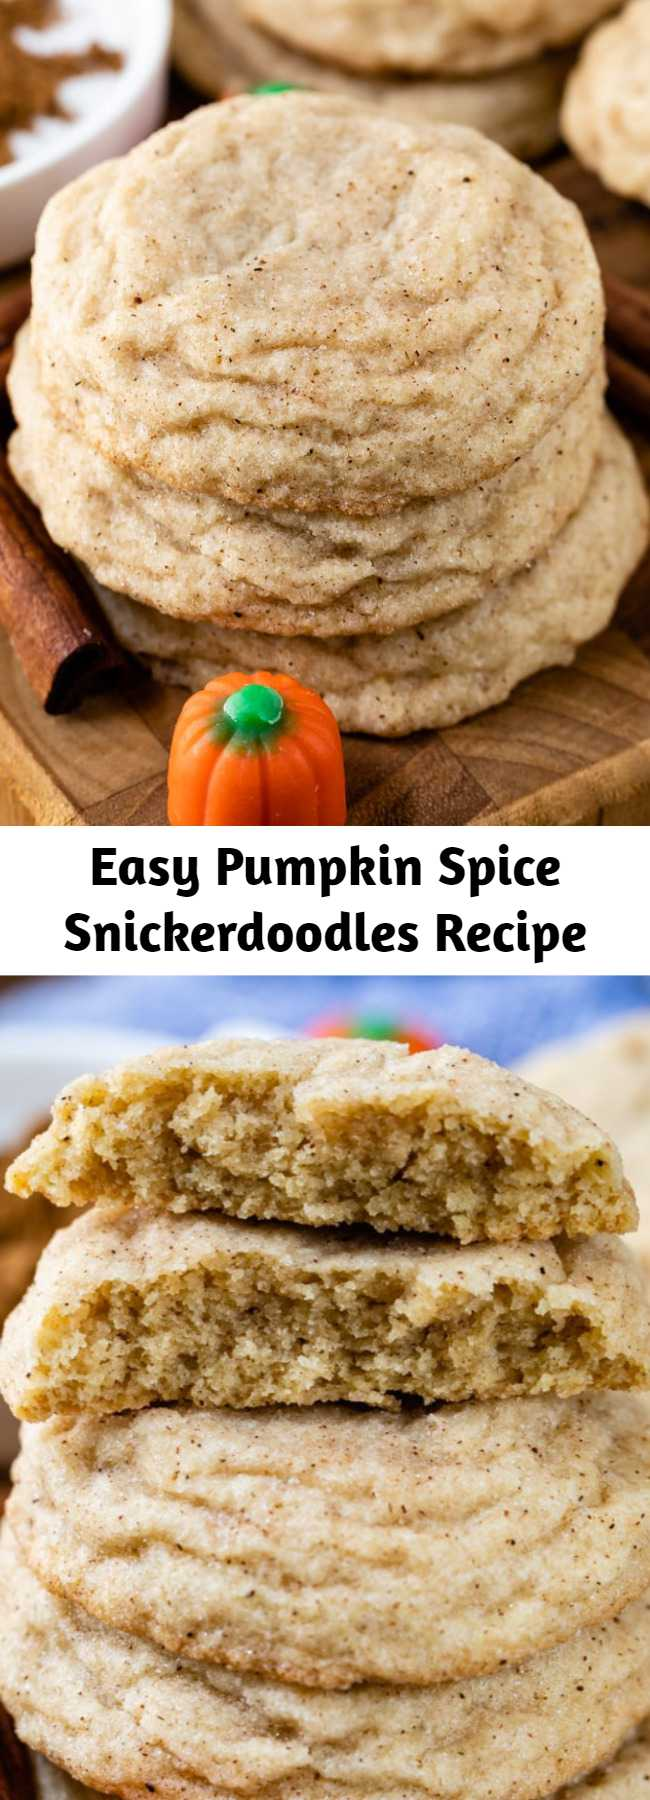 Easy Pumpkin Spice Snickerdoodles Recipe - We love this easy cookie recipe! Make snickerdoodles with pumpkin pie spice! Pumpkin Spice Snickerdoodles are the best fall cookie recipe!